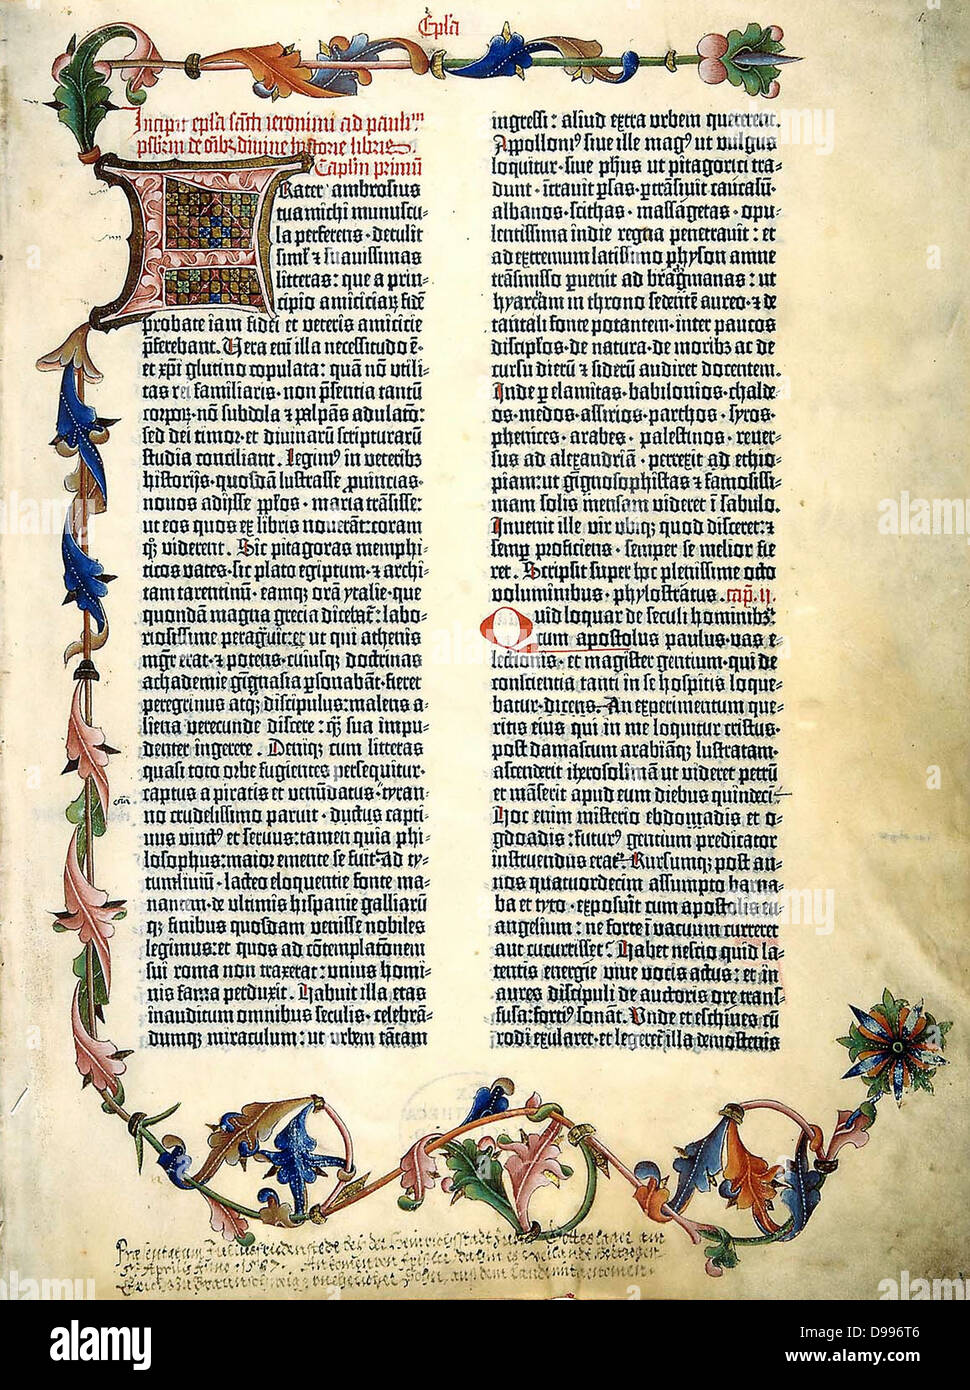 the gutenberg bible first major book printed with a